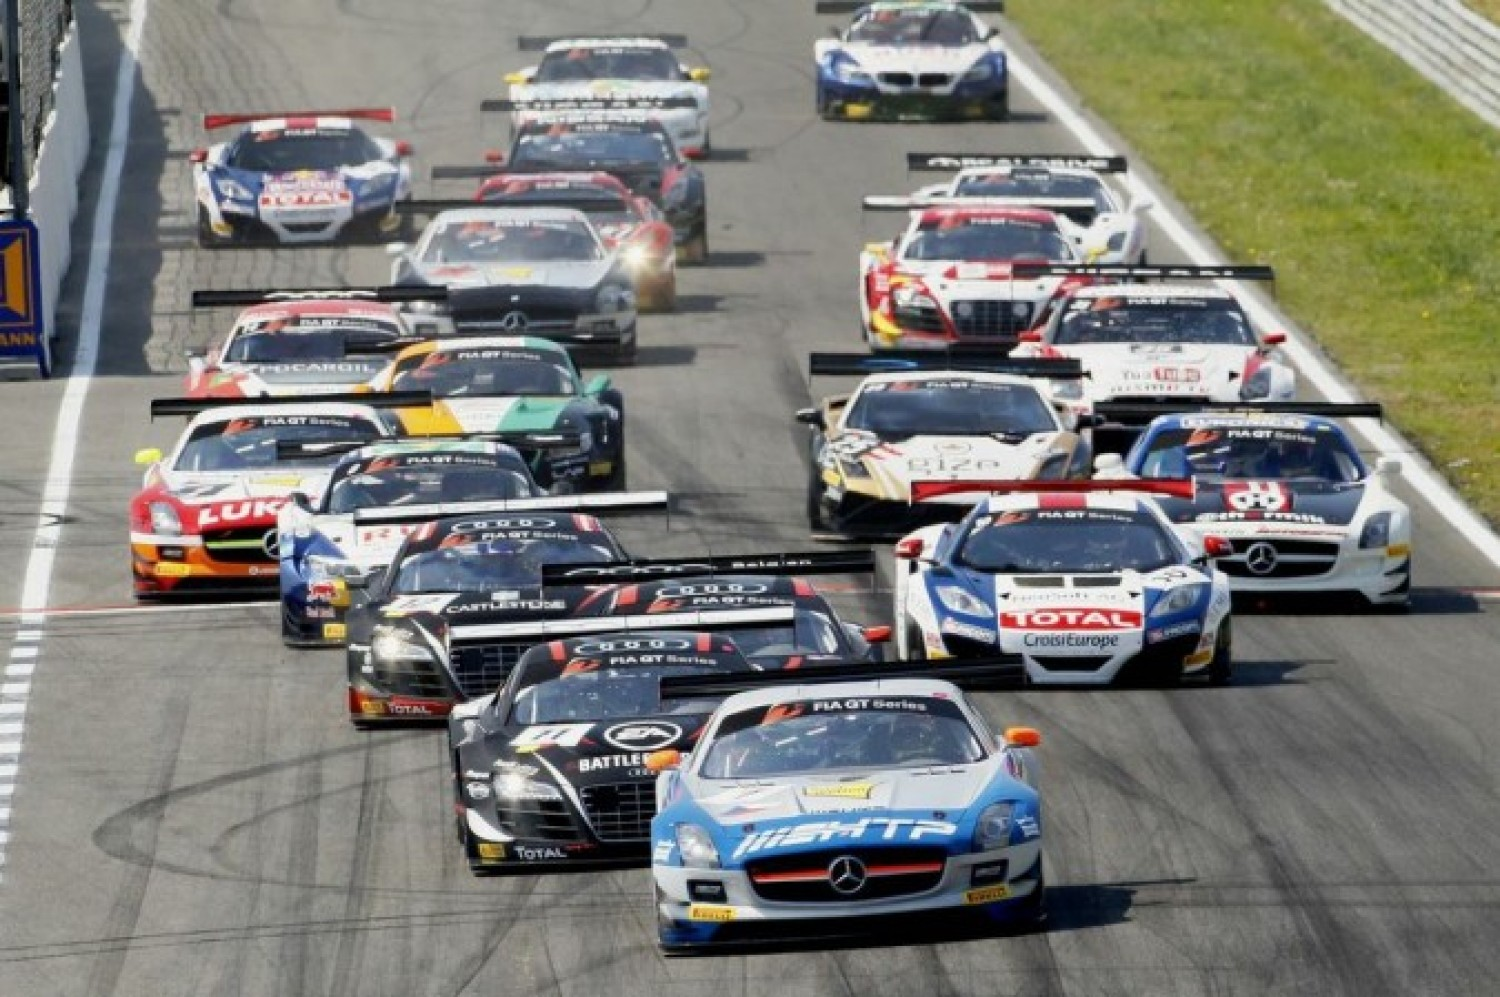 First FIA GT win for HTP Gravity Charouz in Zandvoort